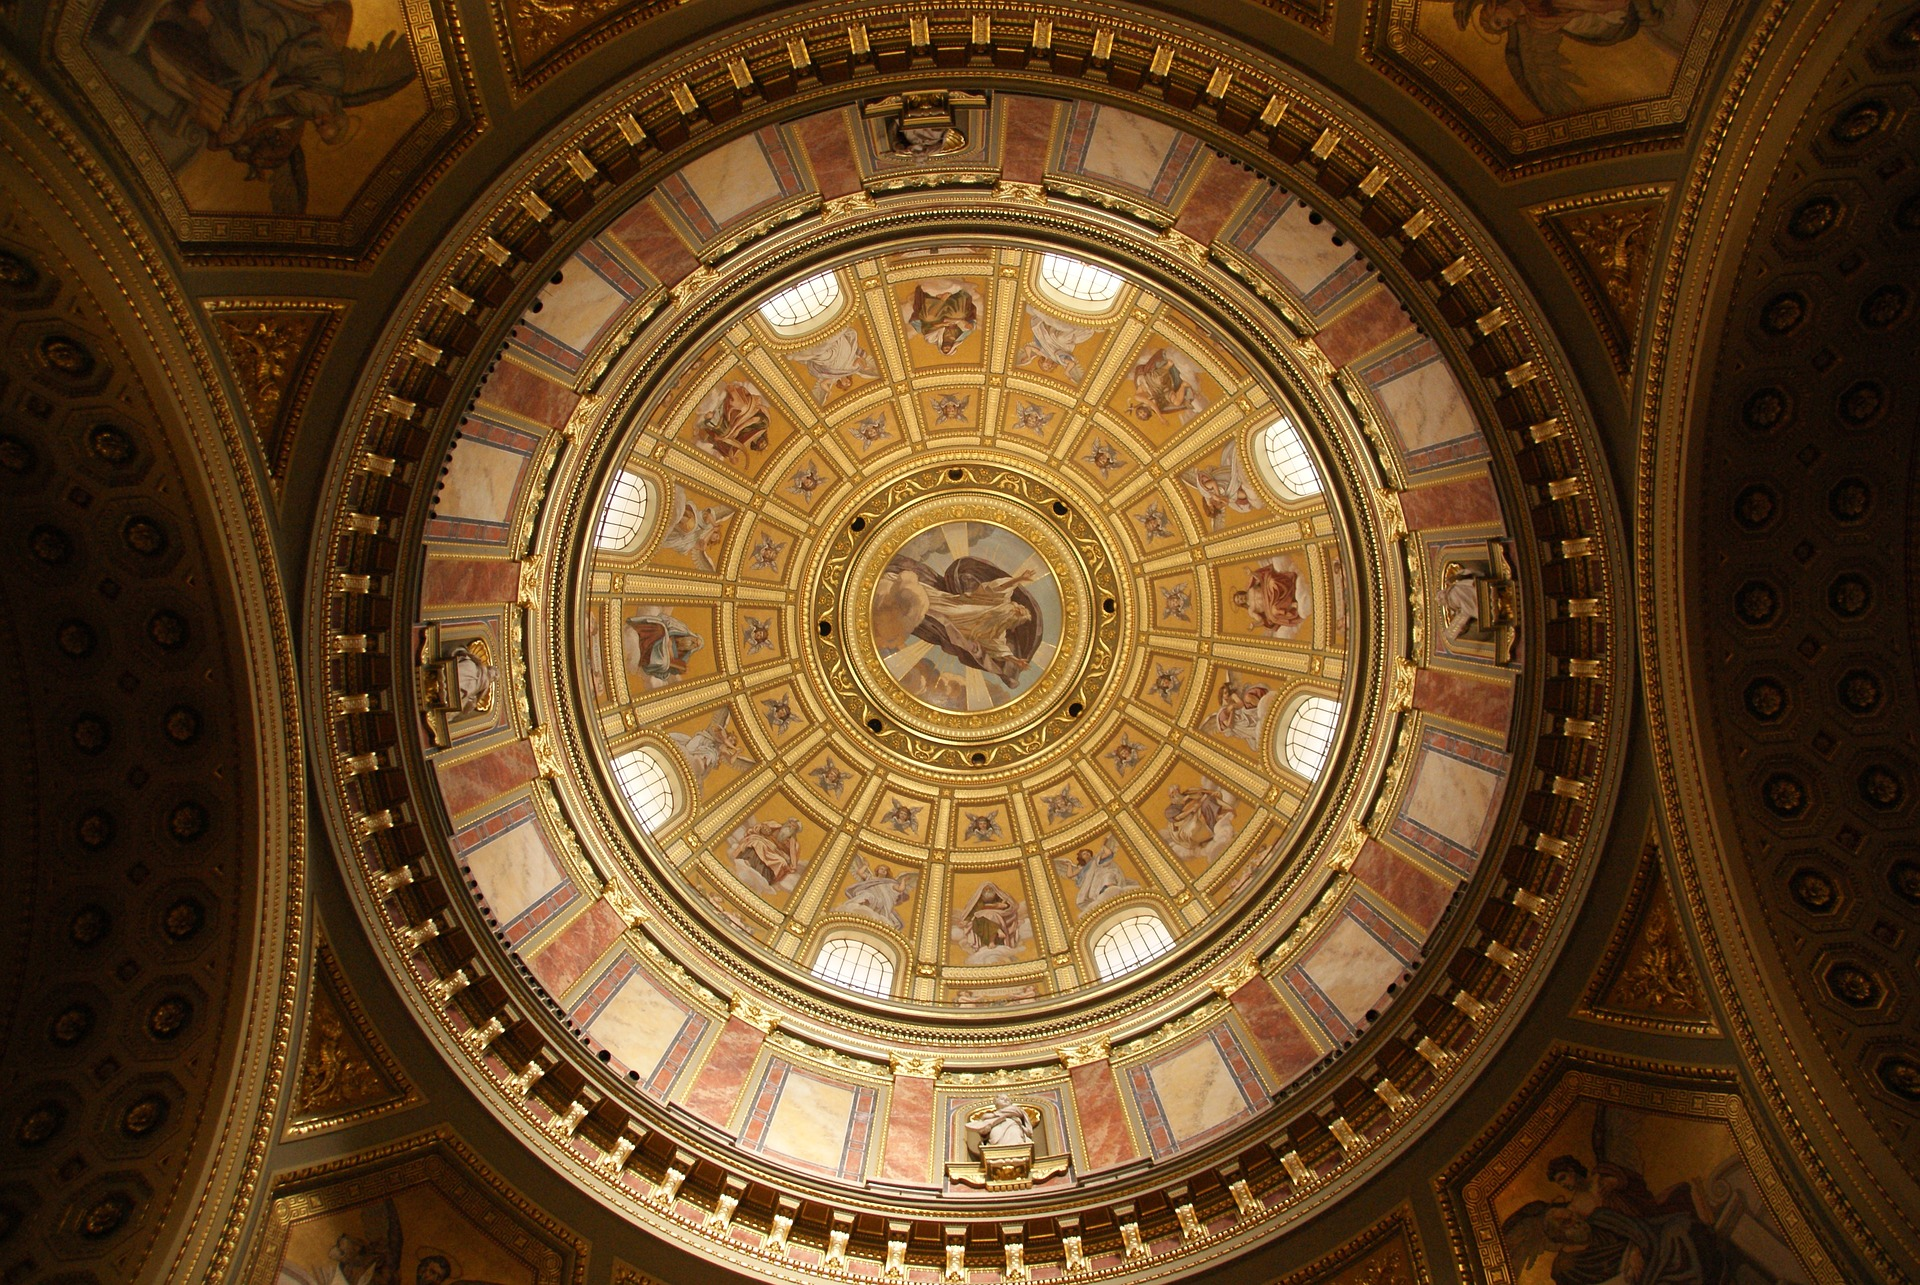 The dome at St. Stephen's Basilica, Budapest, Hungary